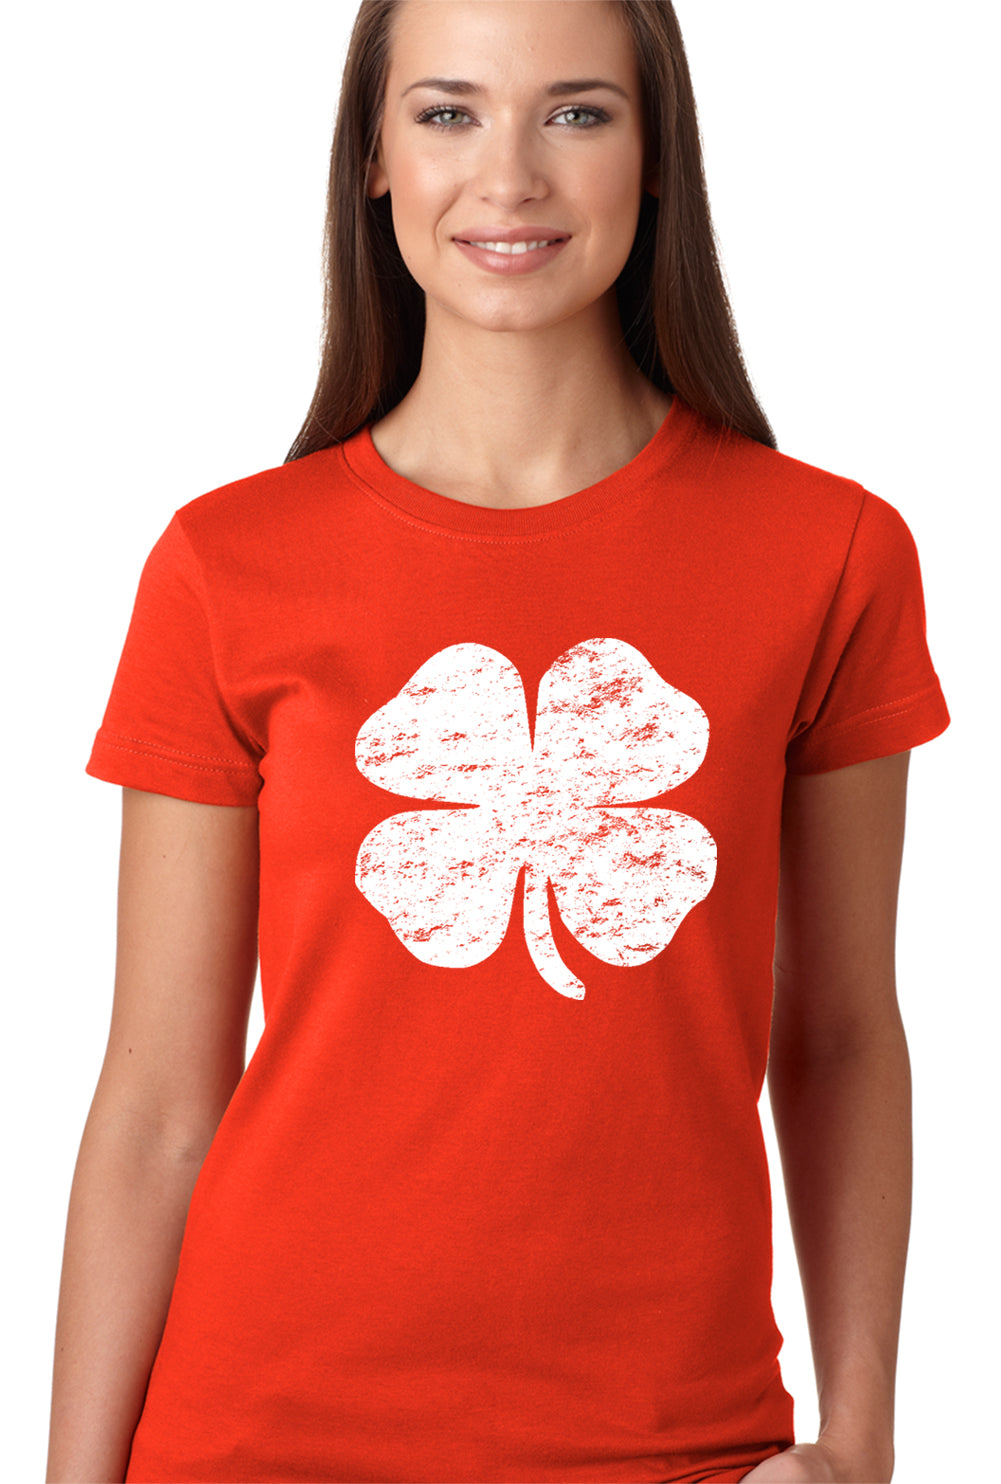 St. Patrick's Day Vintage Distressed 4 Leaf Clover Girls T-shirt